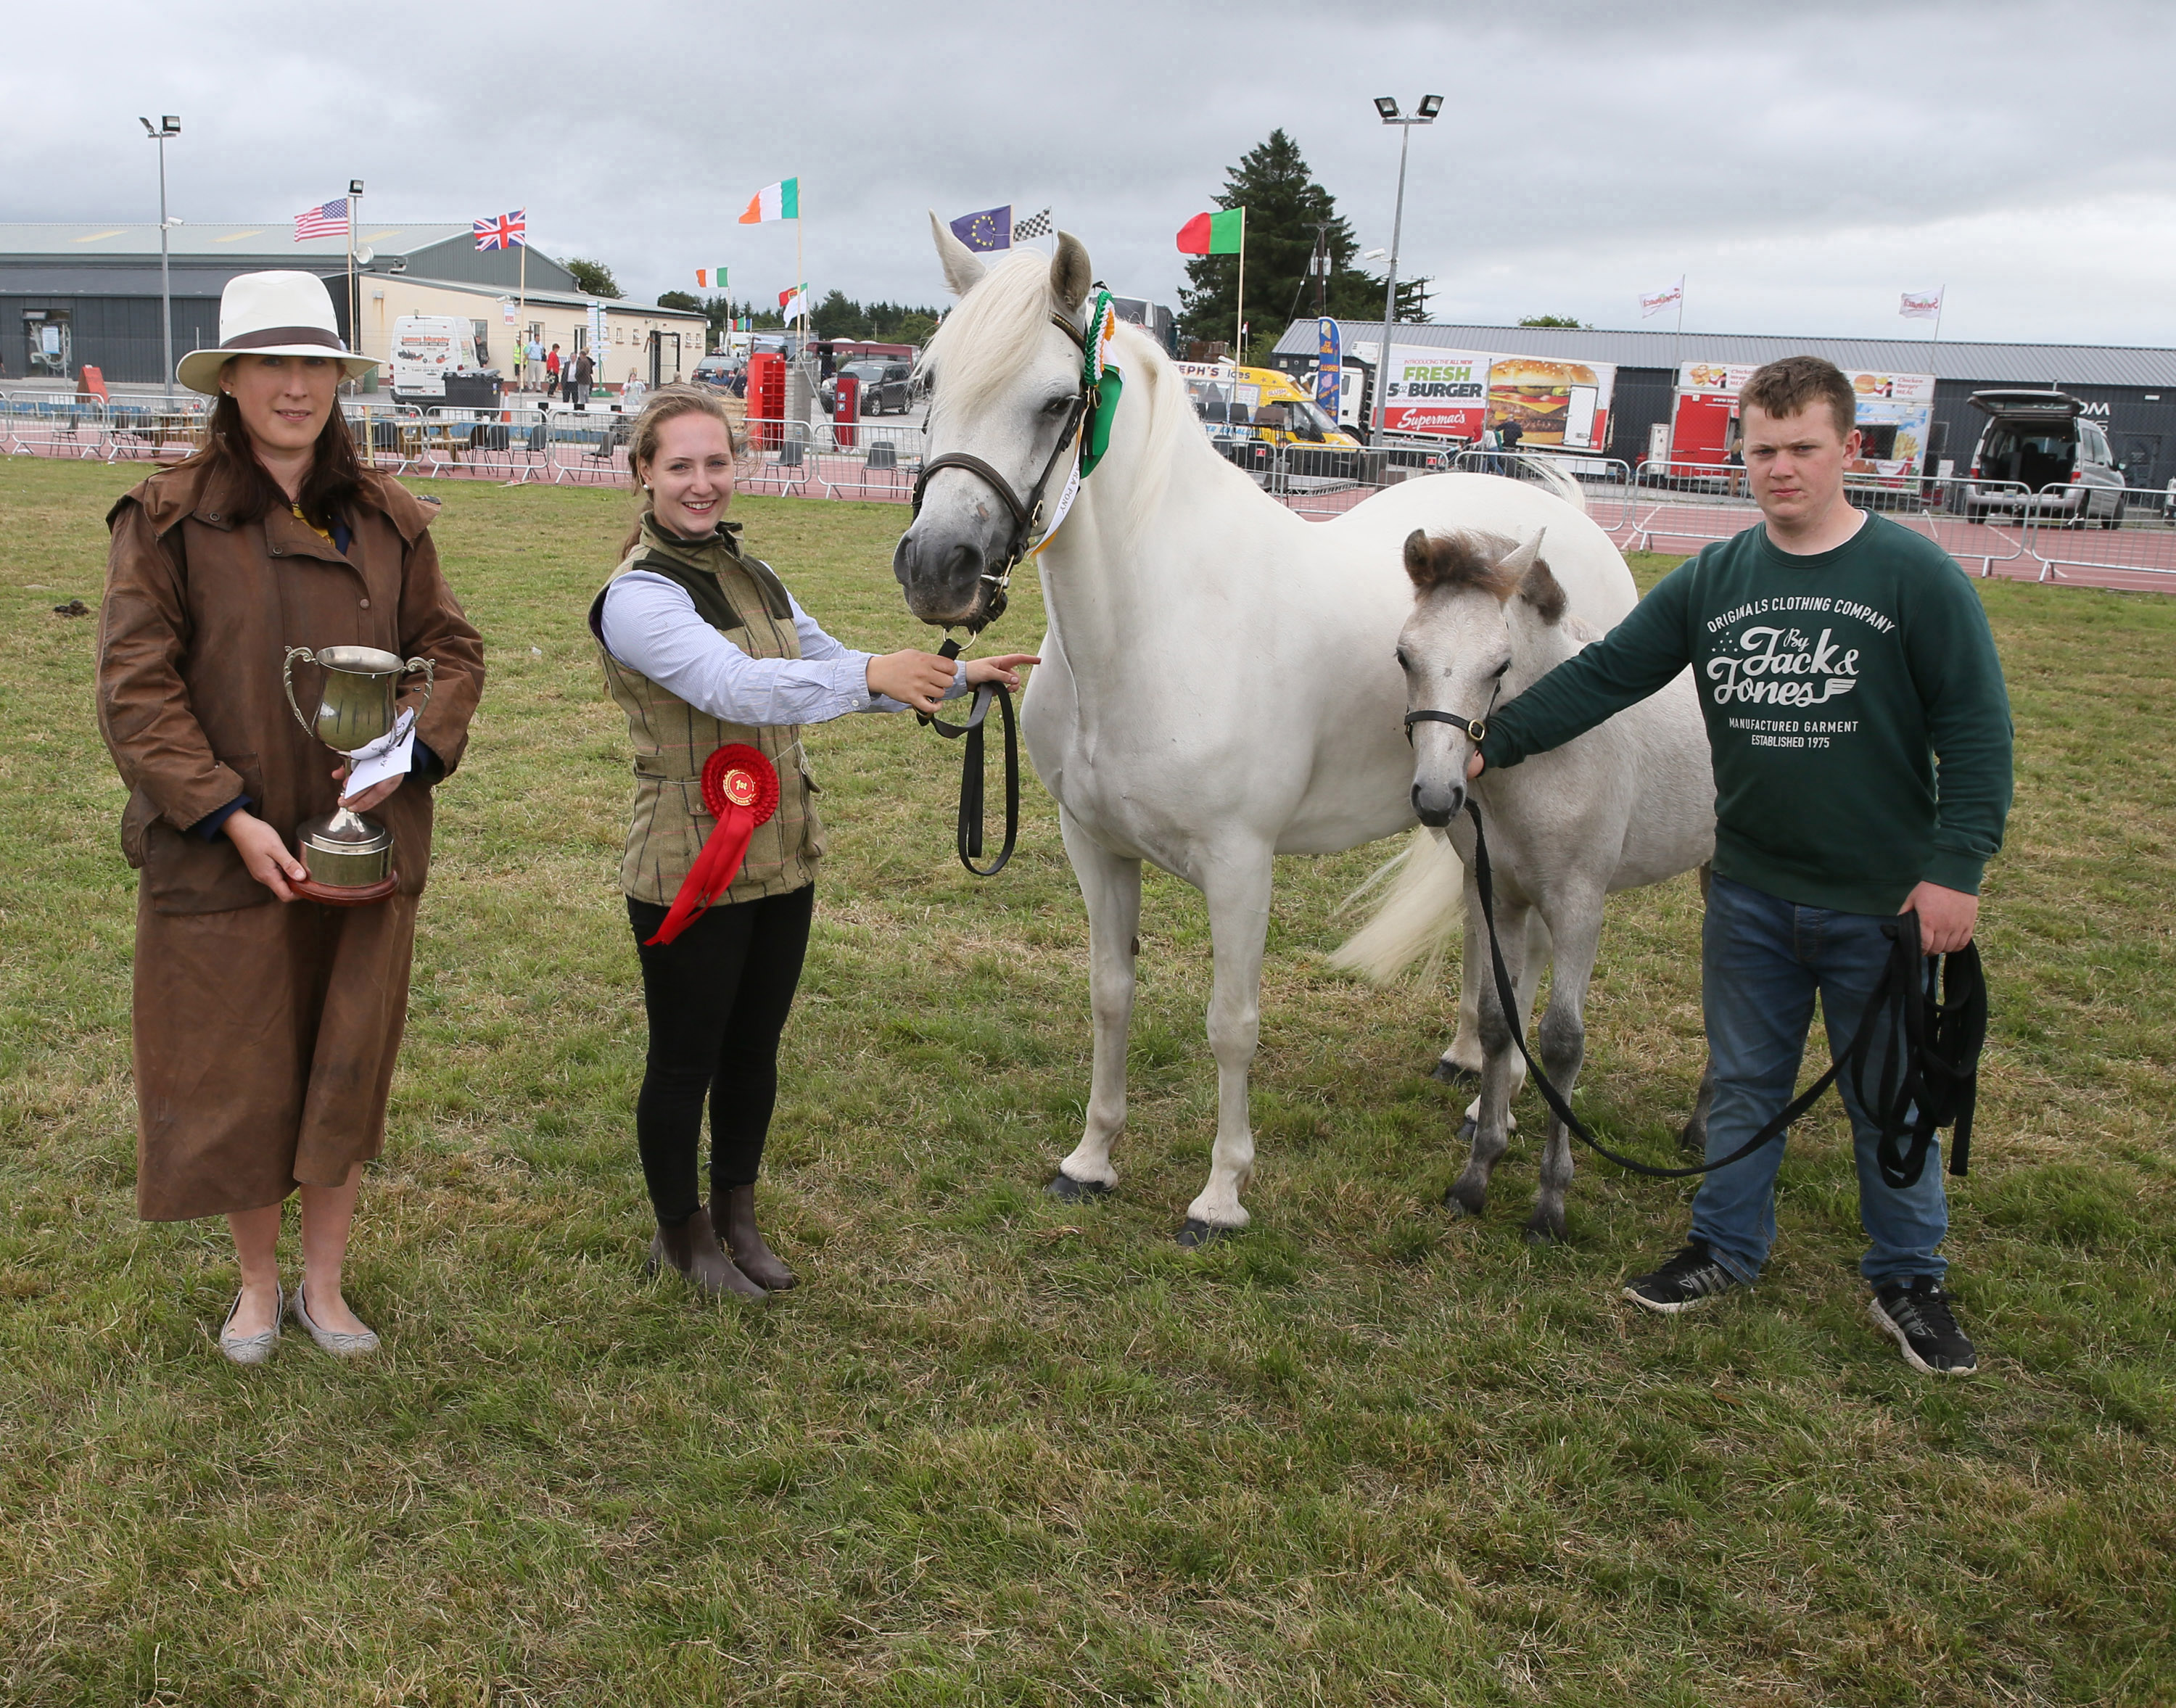 Sarah Conway, (Judge Horse Classes) with the Josie Kerin's Perpetual Cup for Champion Connemara of Show  (sponsored by Ballyhaunis Plant Hire) pictured with Rachel Byrne (granddaughter of Jarlath Grogan, Bekan Claremorris) and Mark Byrne, Tuam. Photo © Michael Donnelly